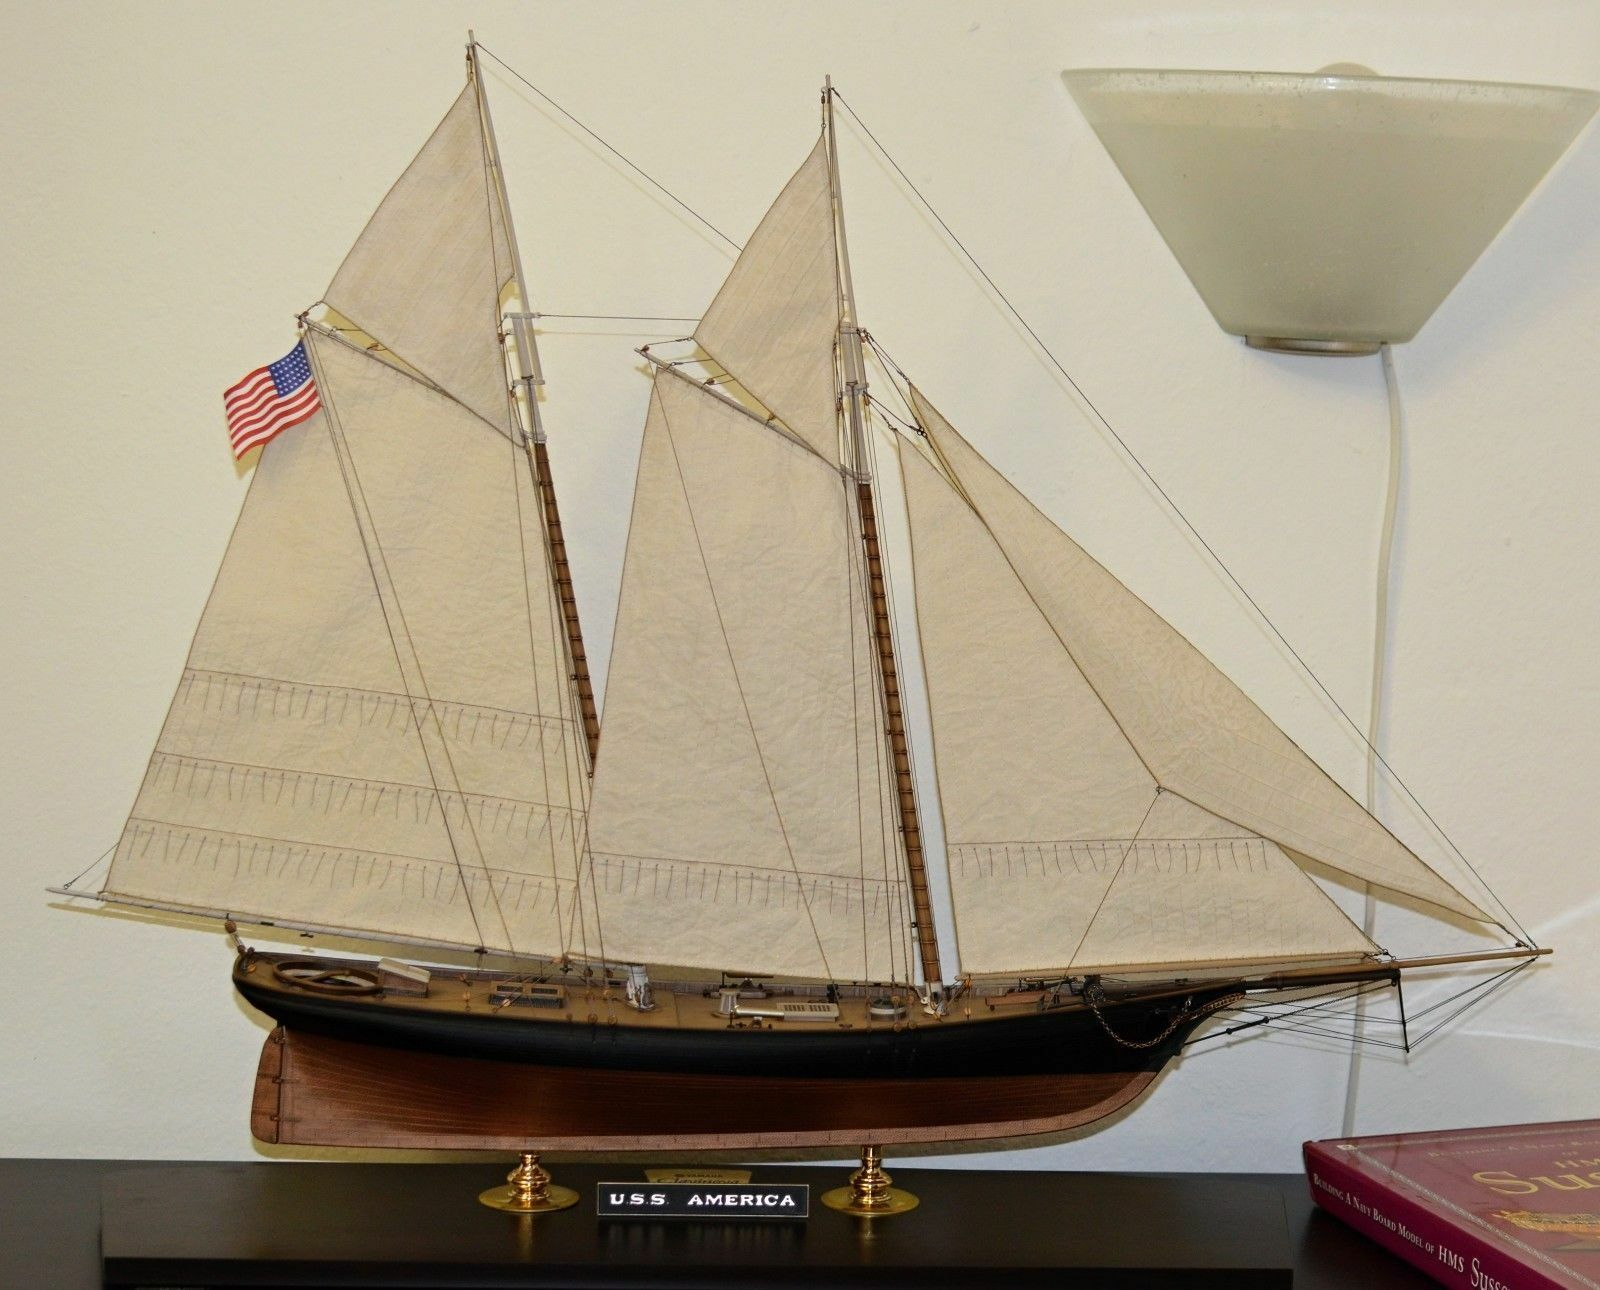 Revell yacht USS America - set of sails for model, 1 56, sewed on CNC mach.